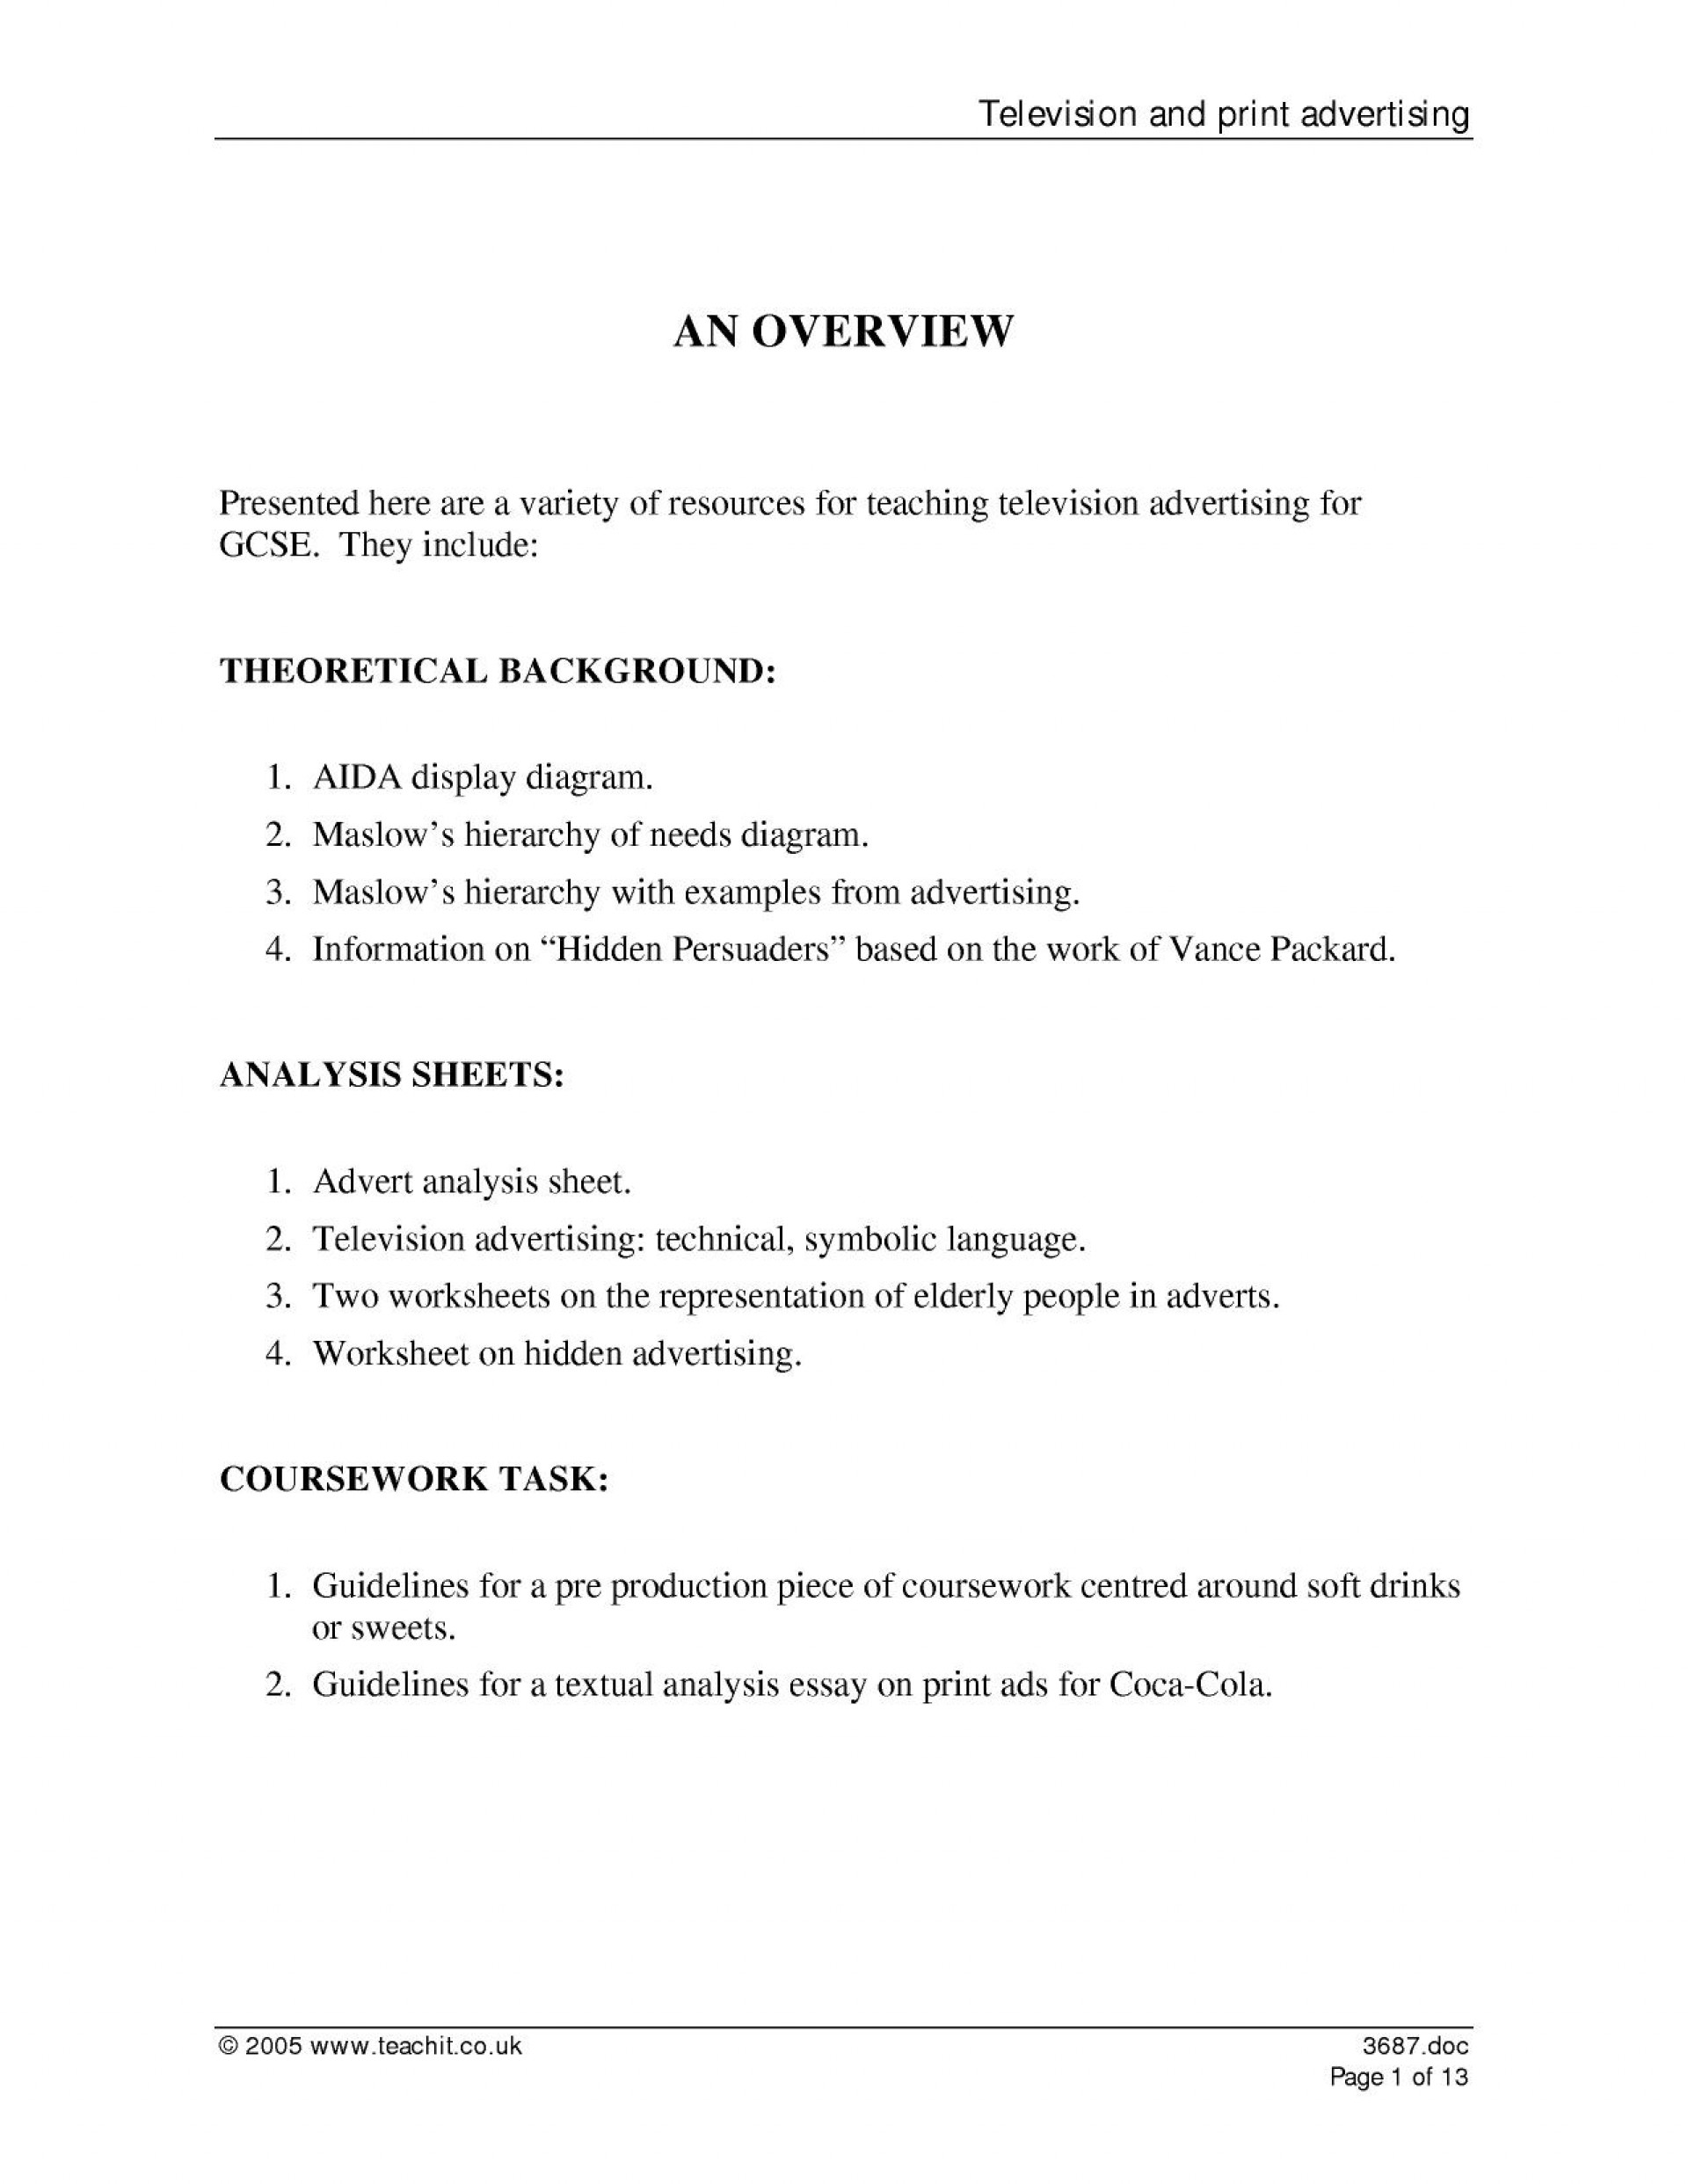 003 Essay Example Diagram Caltech Advertisement Analysis How To Write Long Quickly Proposal In One Night For Ap World History Question Apush With Little Information Us Fast Magnificent Essays Tips Application Questions Supplemental 2018 1920